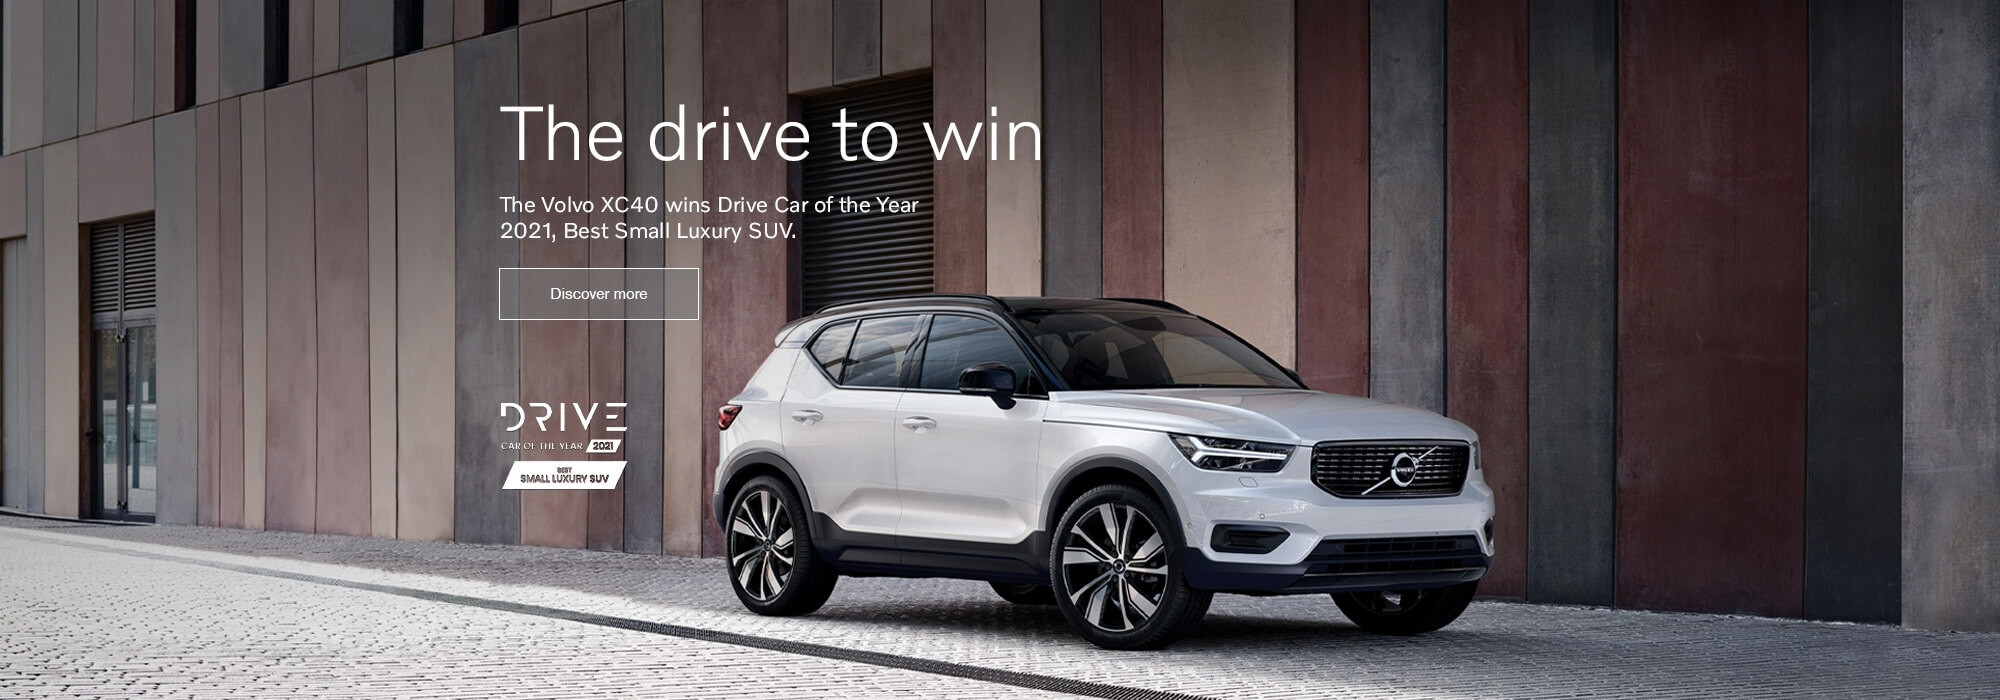 The Volvo XC40 wins Drive Car of the Year 2021, Best Small Luxury SUV.